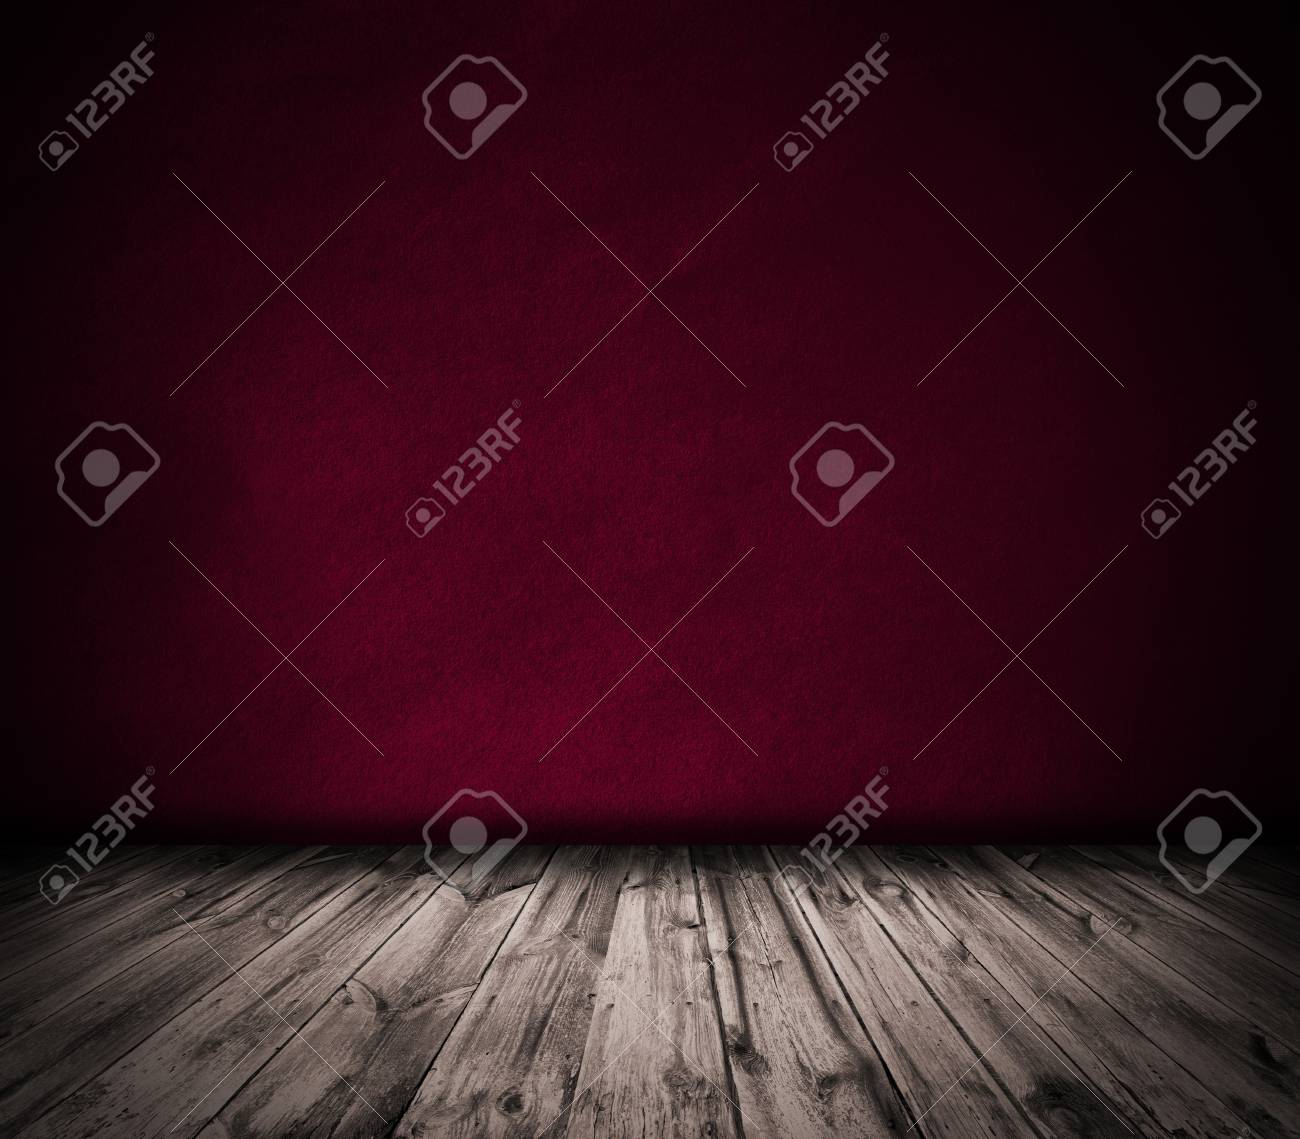 Red wall and wooden floor interior background - 36295723